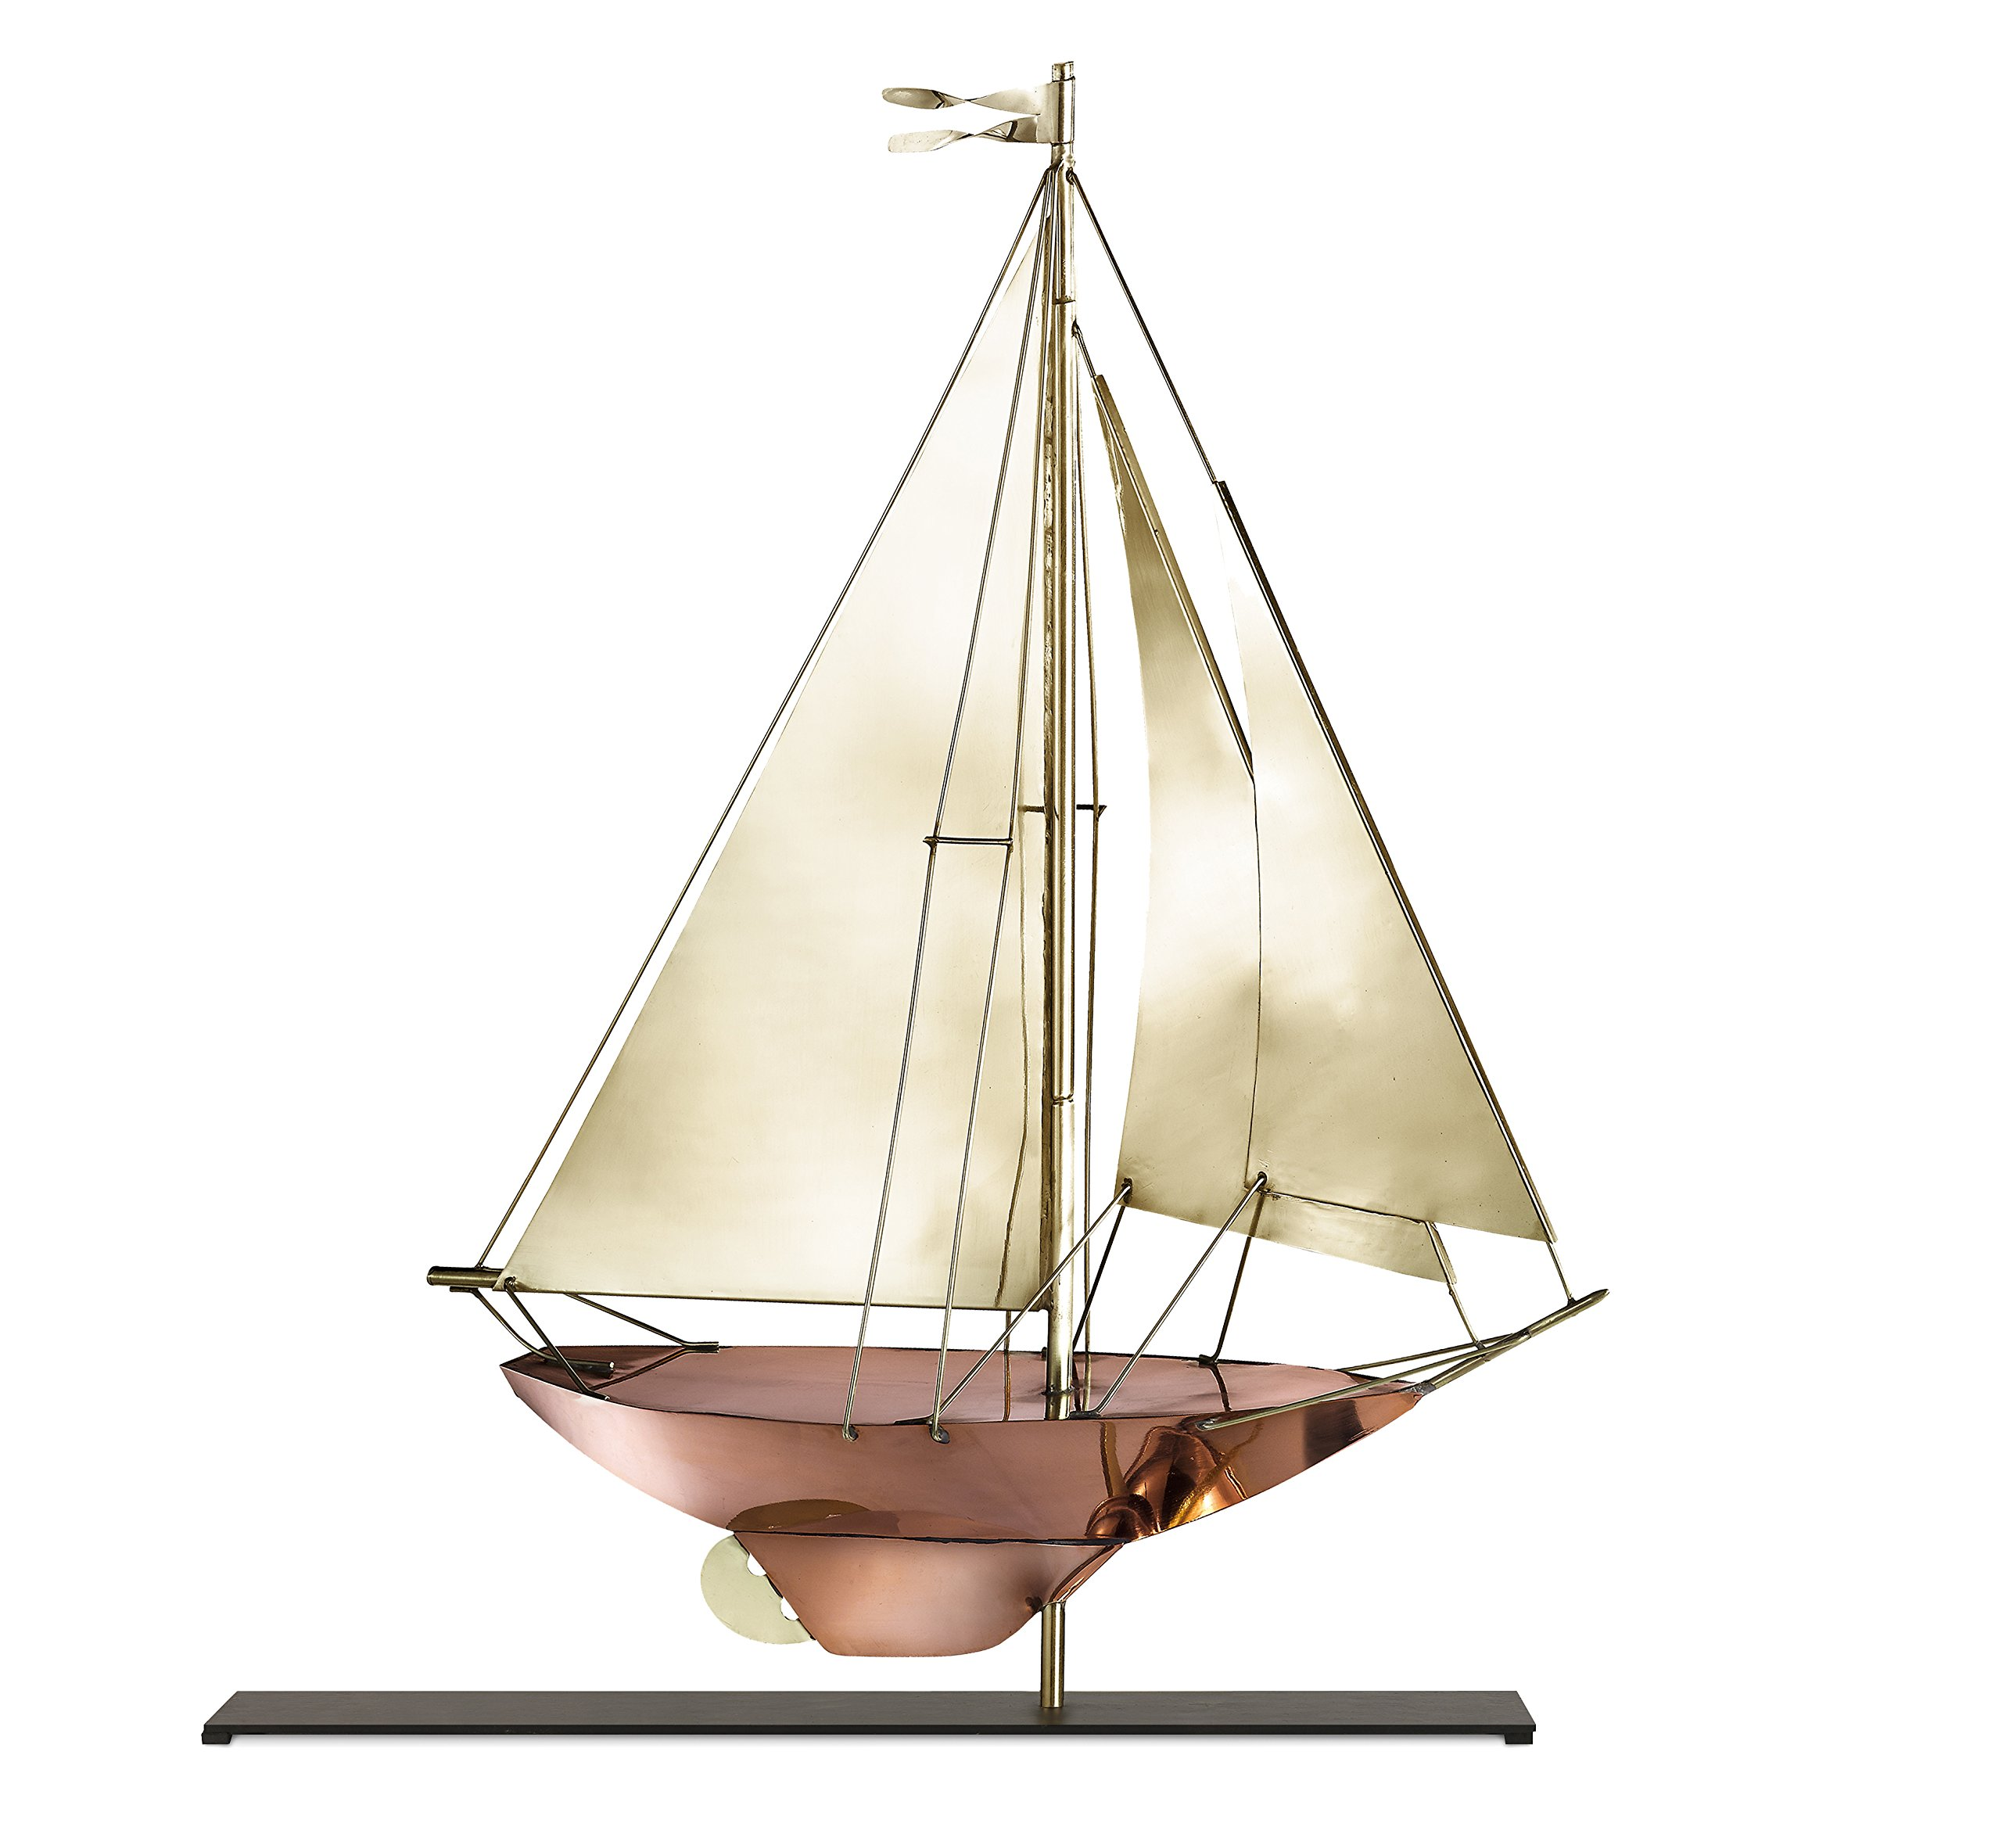 Good Directions Racing Sloop Weathervane Sculpture on Mantel / Fireplace Stand, Pure Copper and Brass, Nautical Home Décor, Tabletop Accent